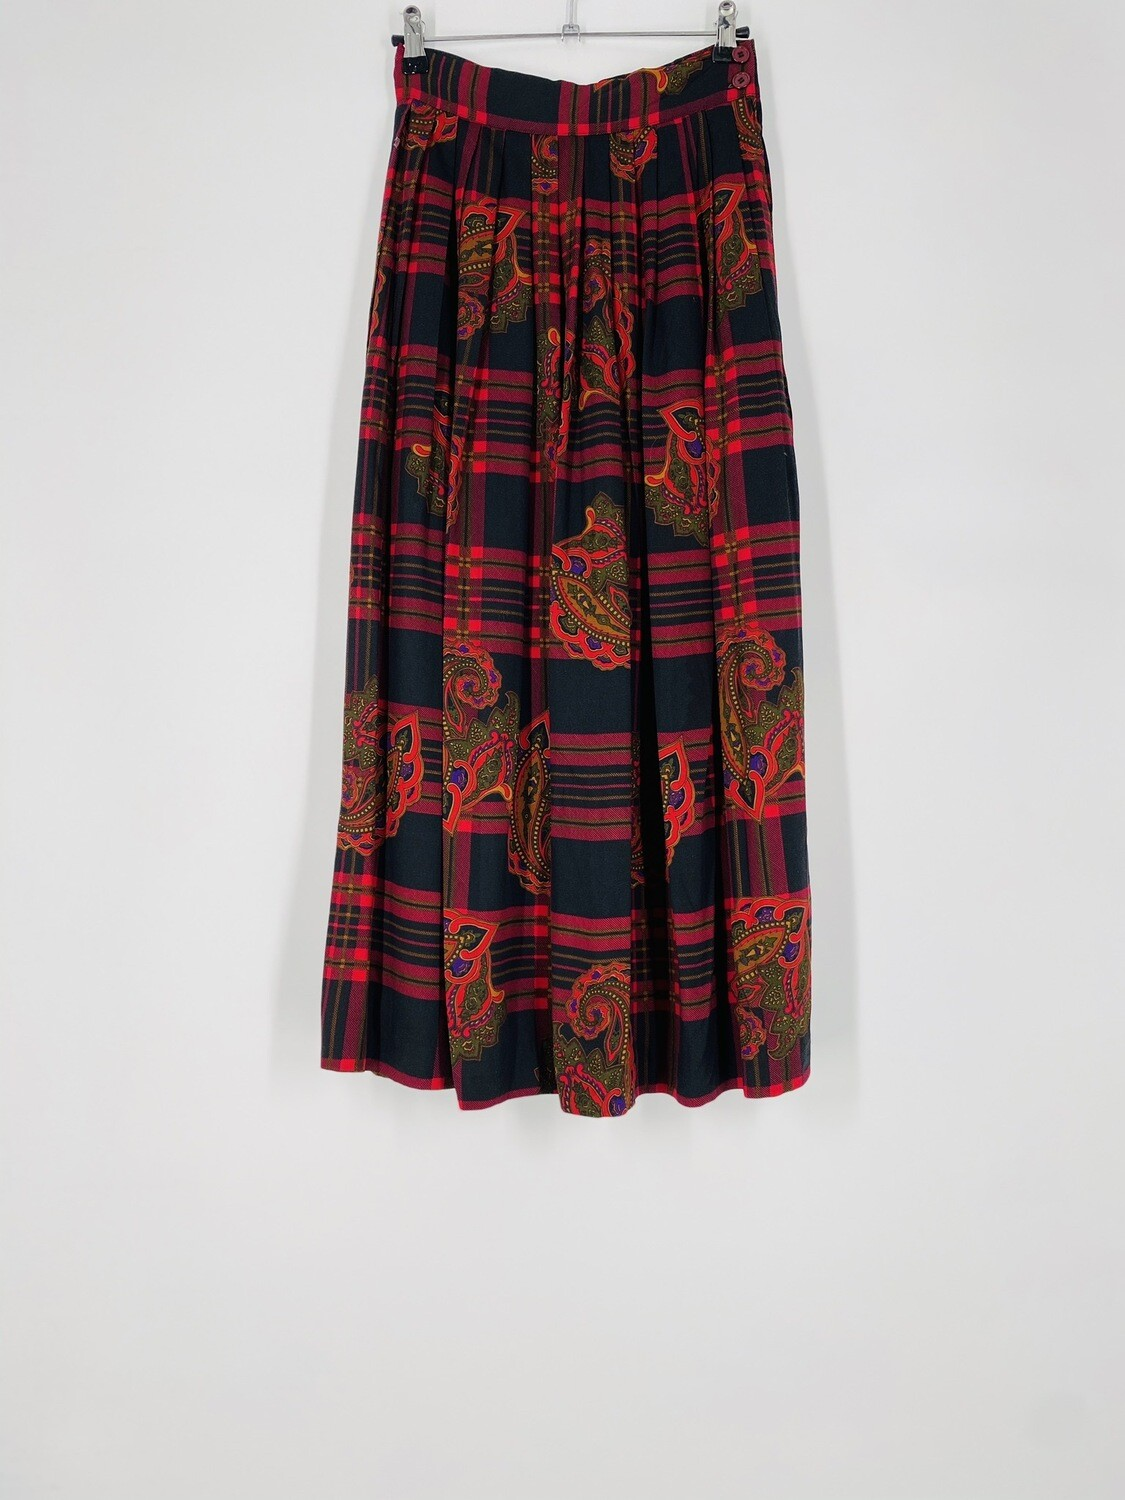 JG Hook Red Printed Skirt Size S